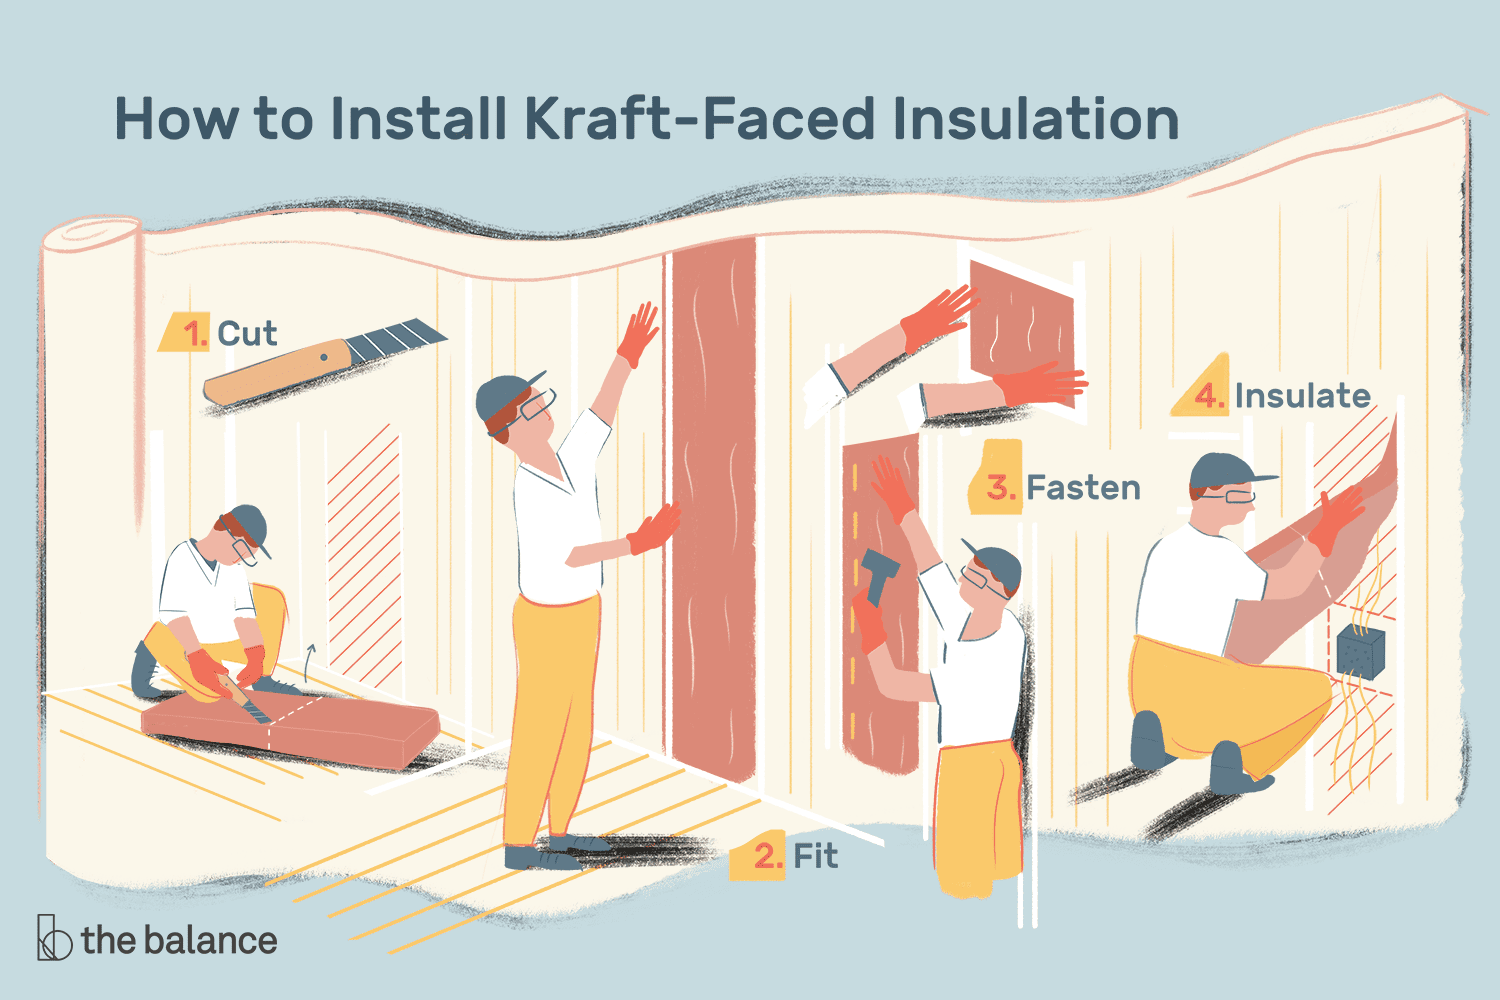 How to Install Kraft-Faced Insulation